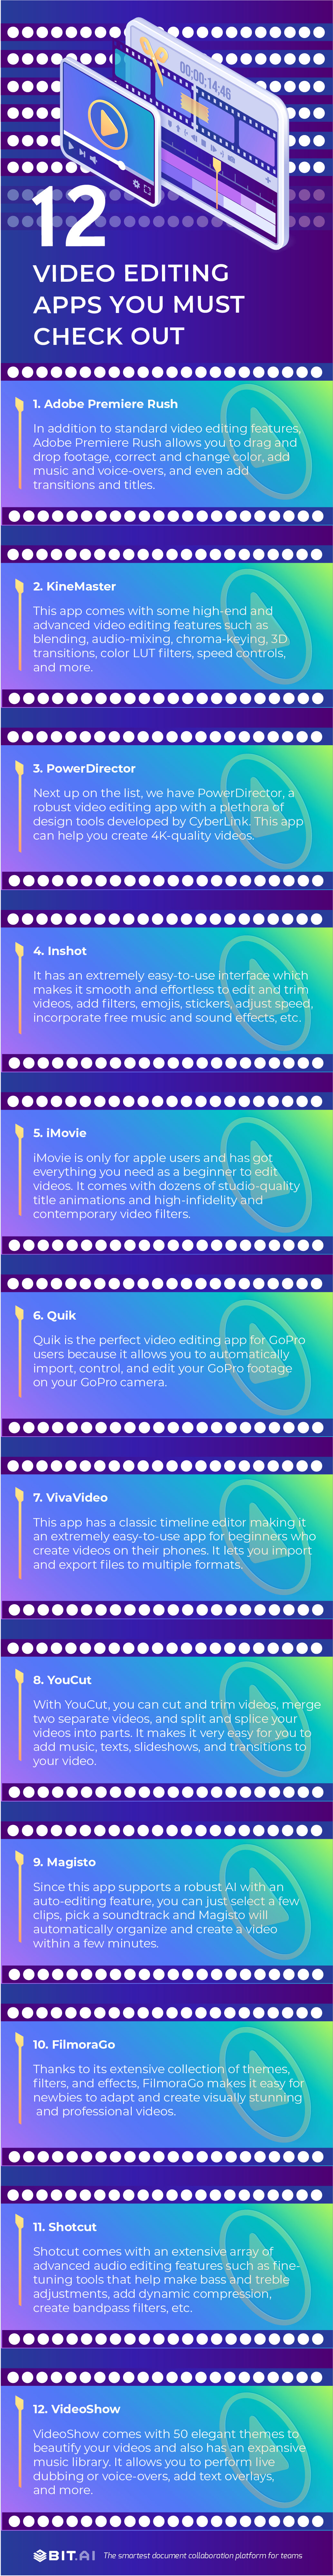 Video editing apps infographic